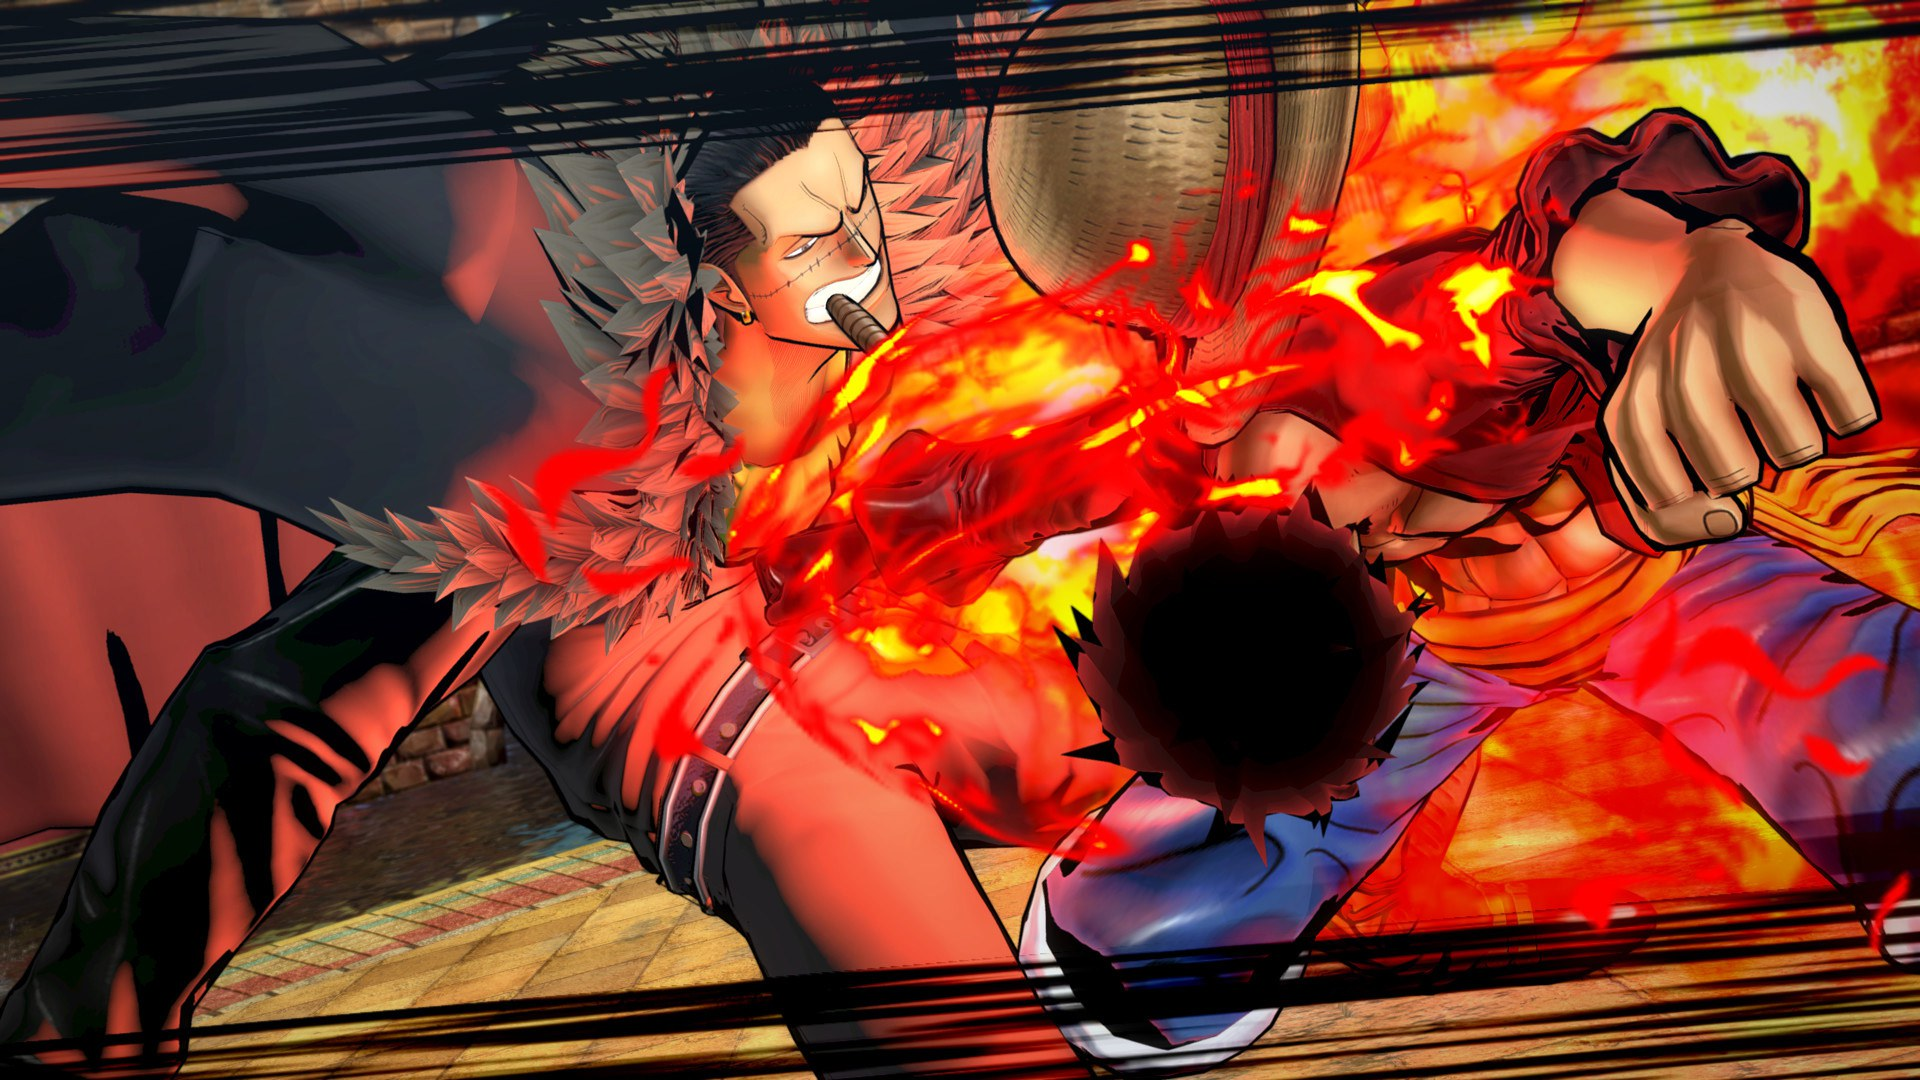 One Piece Burning Blood Steam Screenshots 03